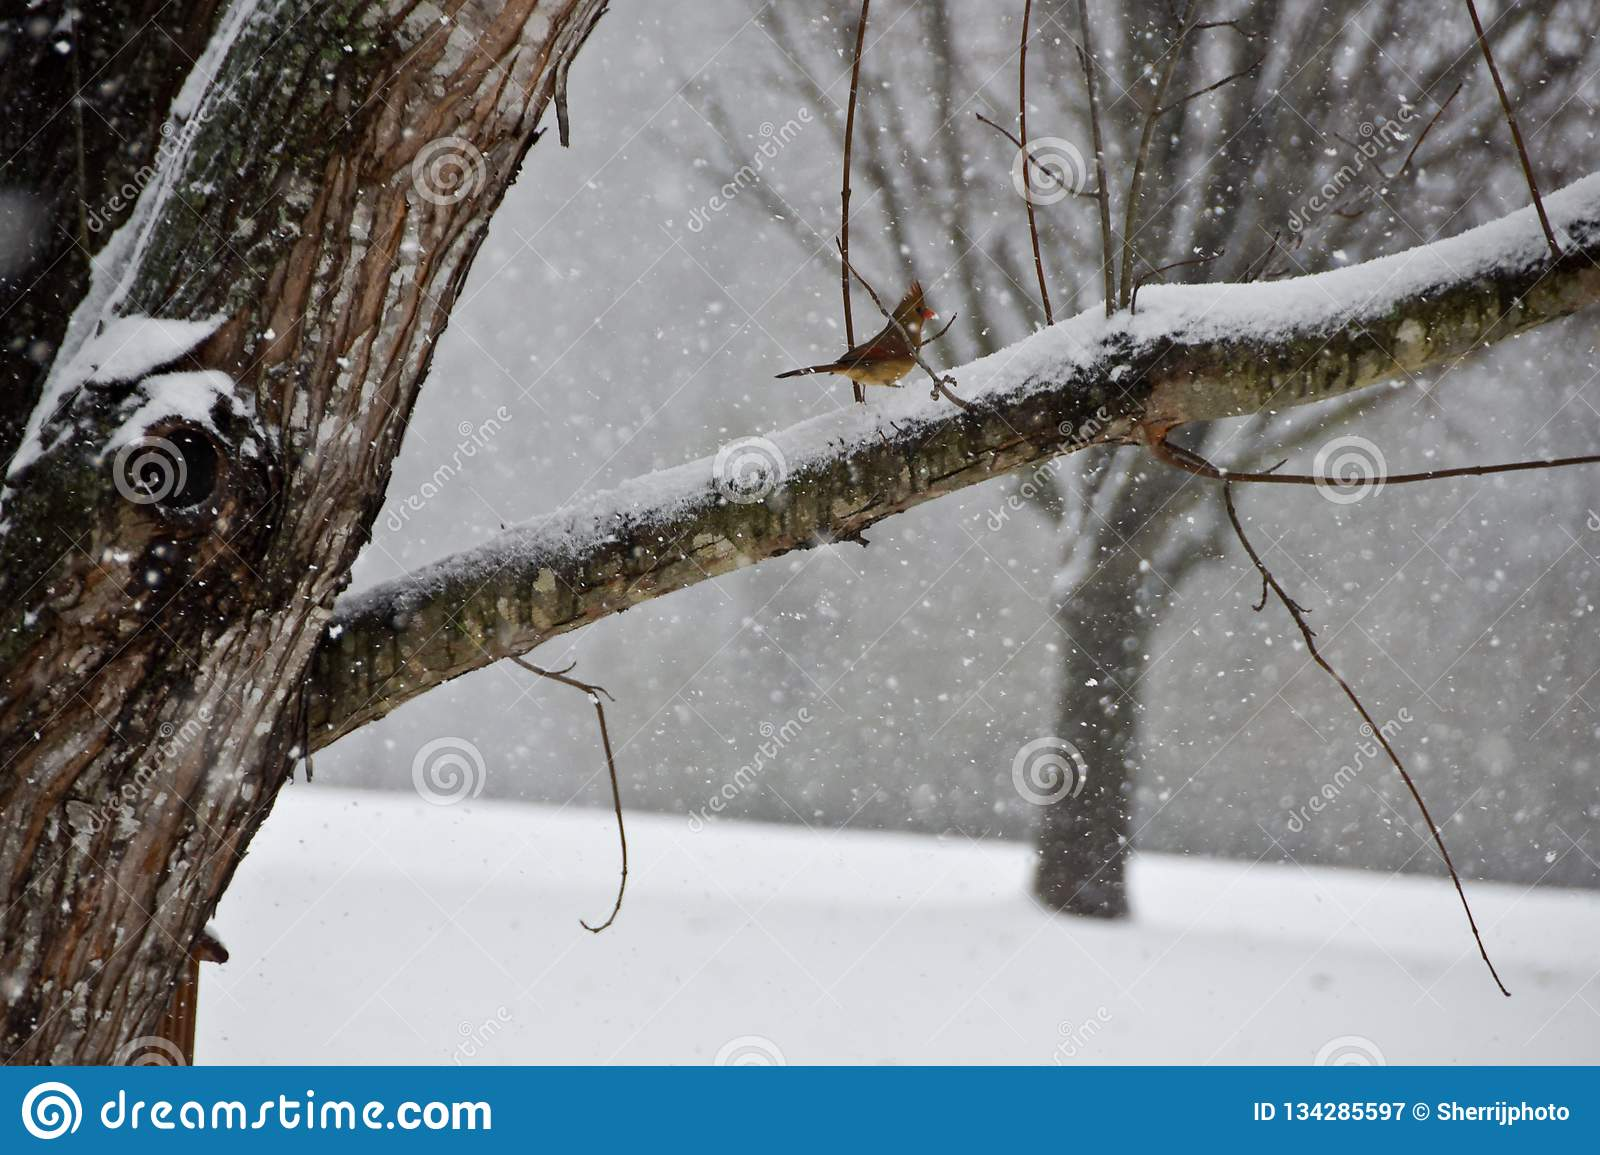 Female Cardinal Perched on a branch in a Snow Storm